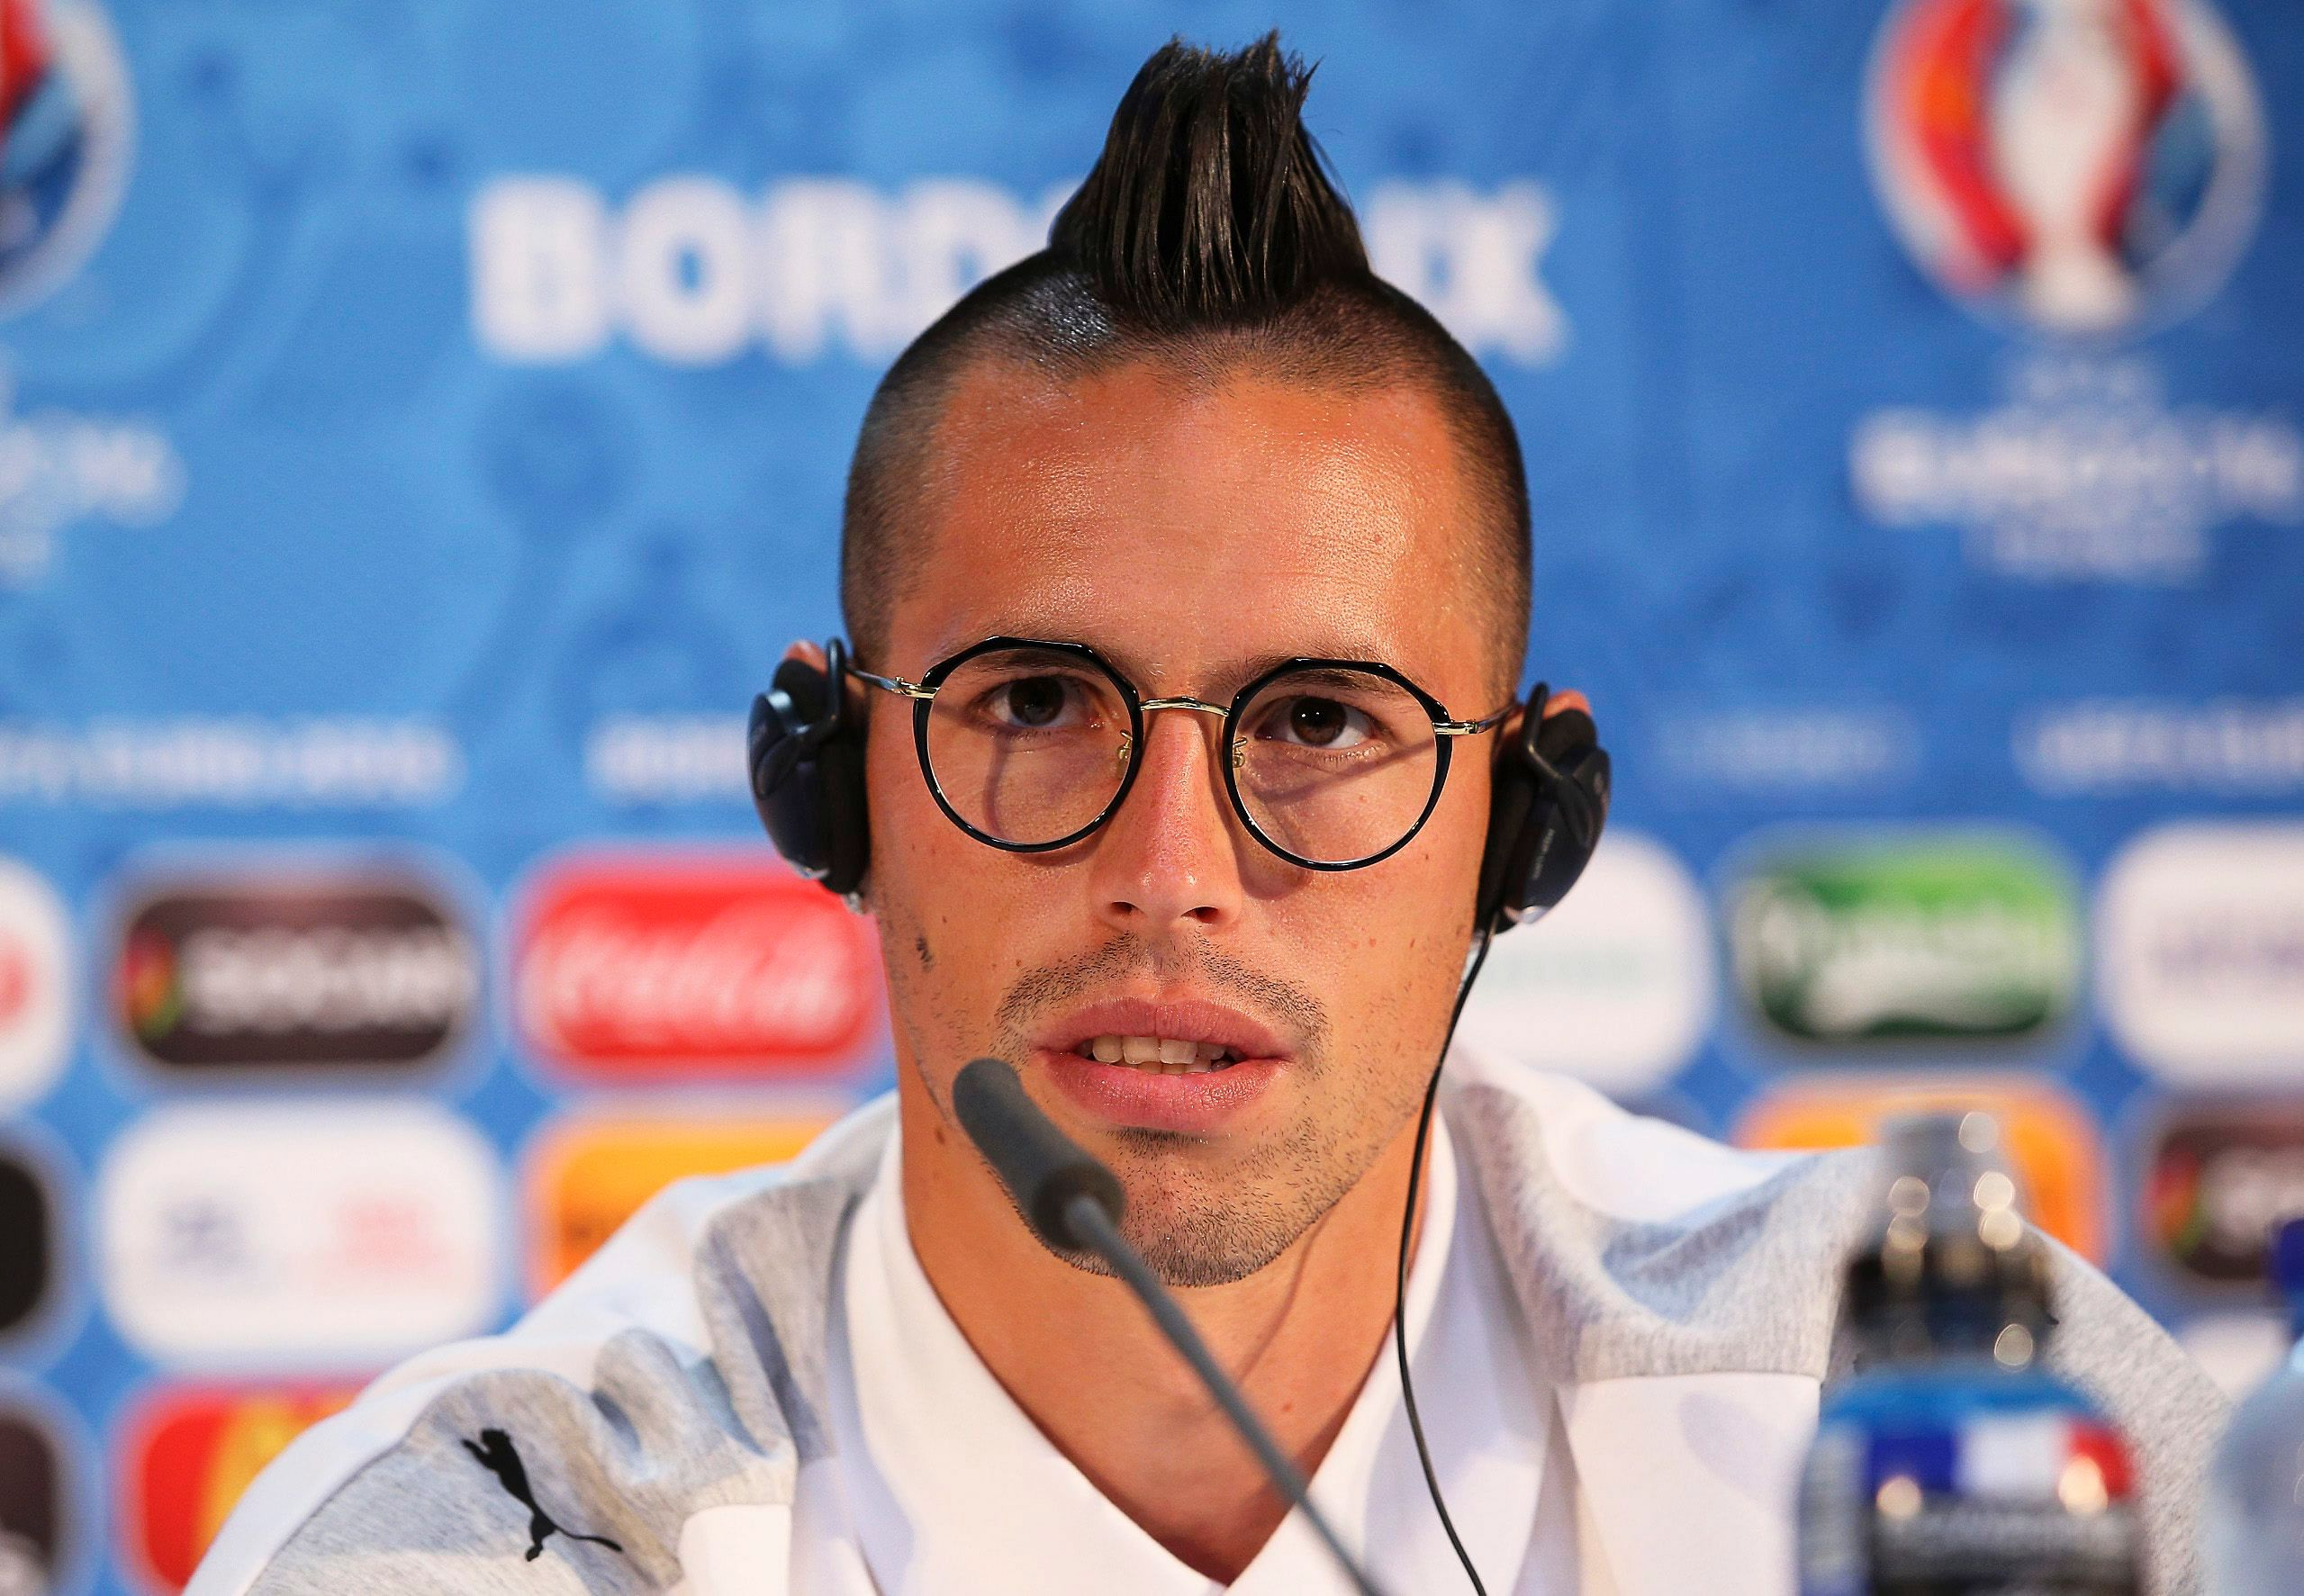 Euro 2016 Hairstyles That Are Head And Shoulders Above The